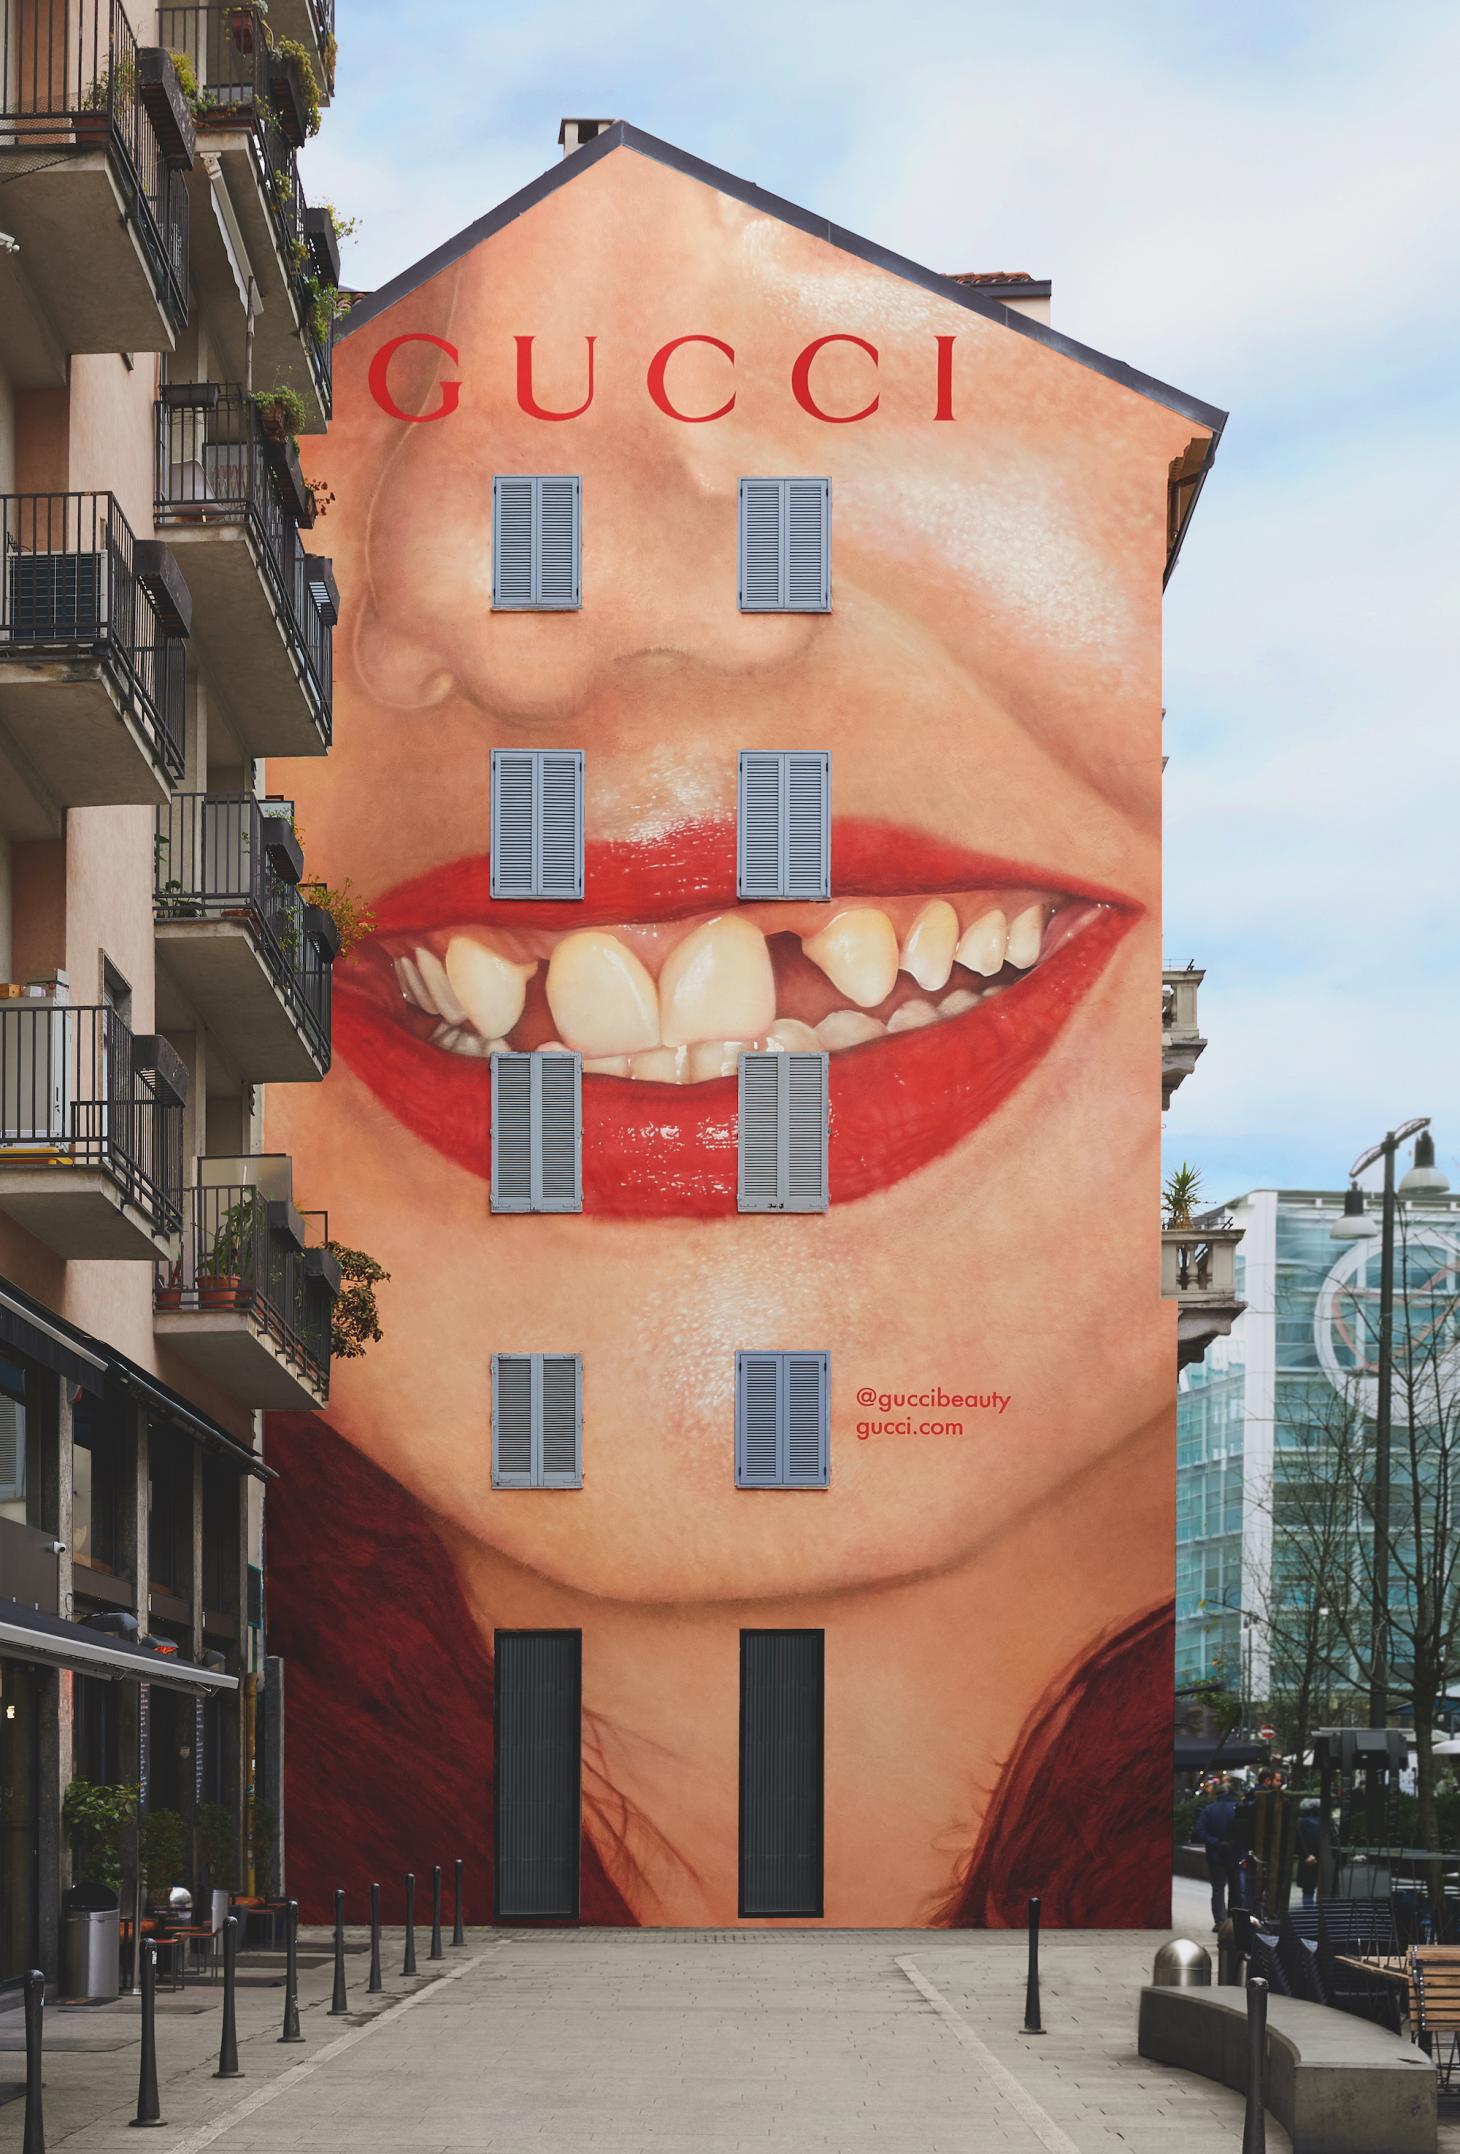 large painting of red lips on the side of a building